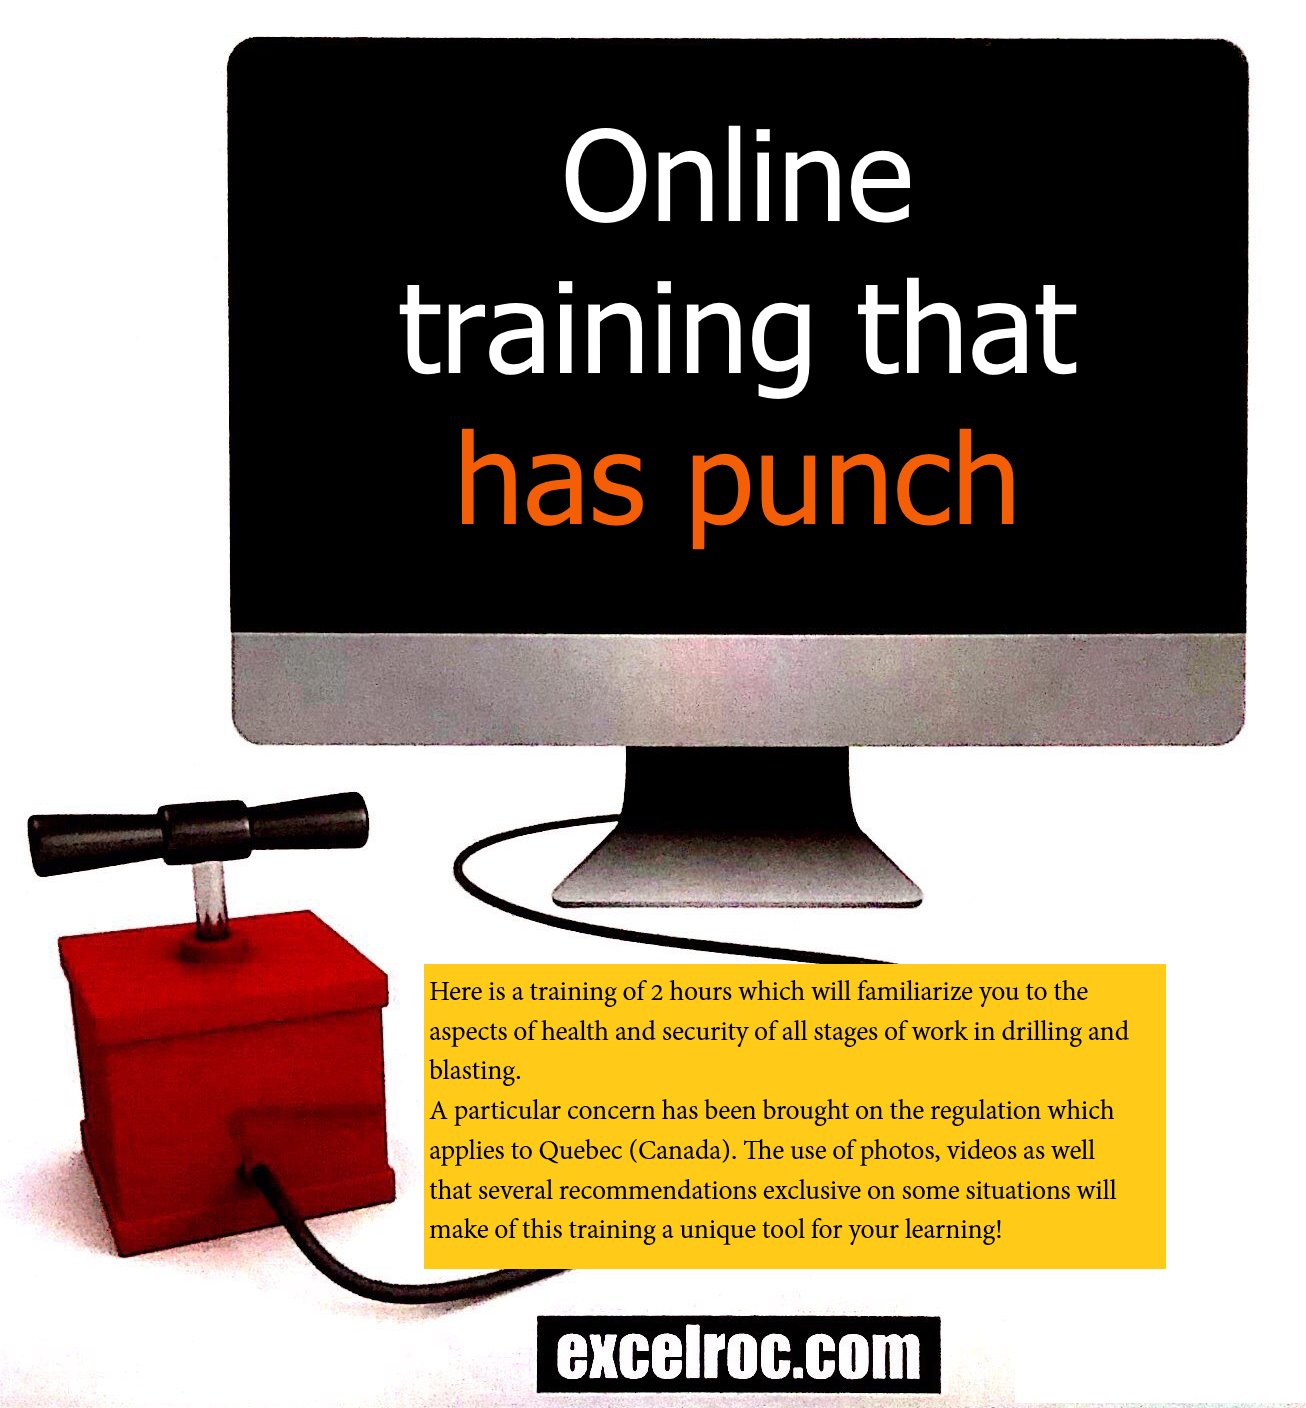 Online training that has punch